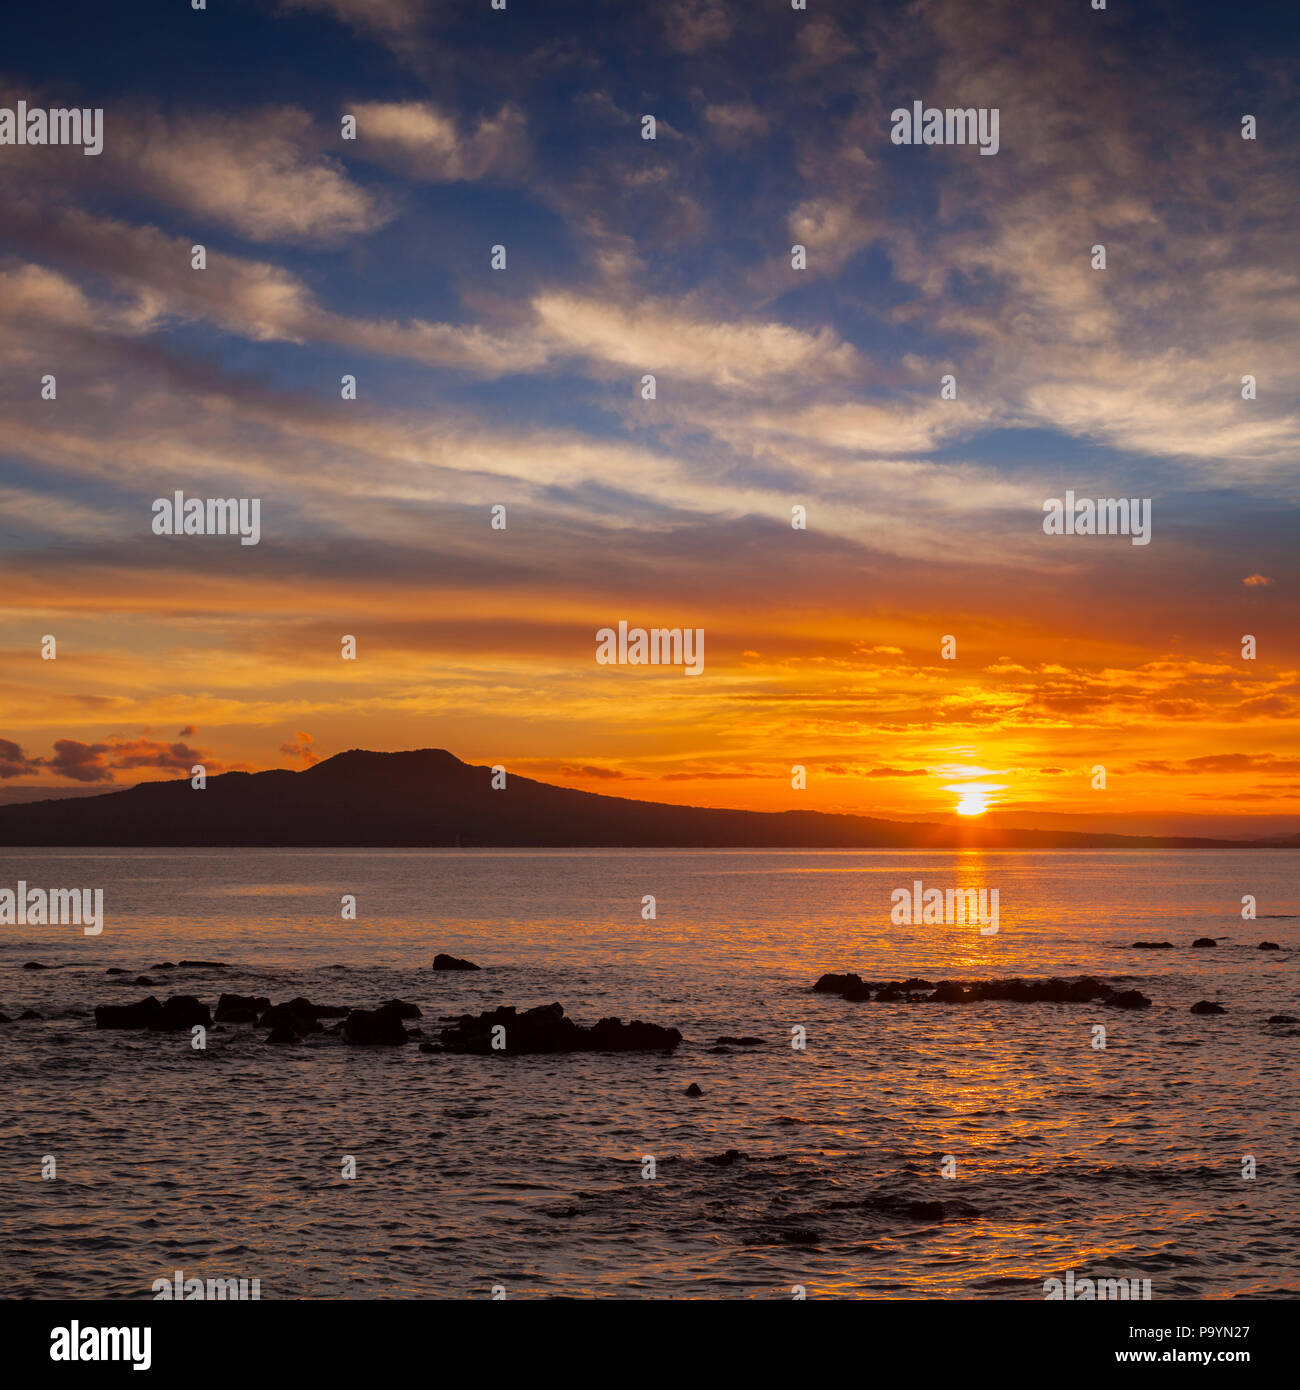 Rangitoto Island at sunrise, Auckland, New Zealand. - Stock Image